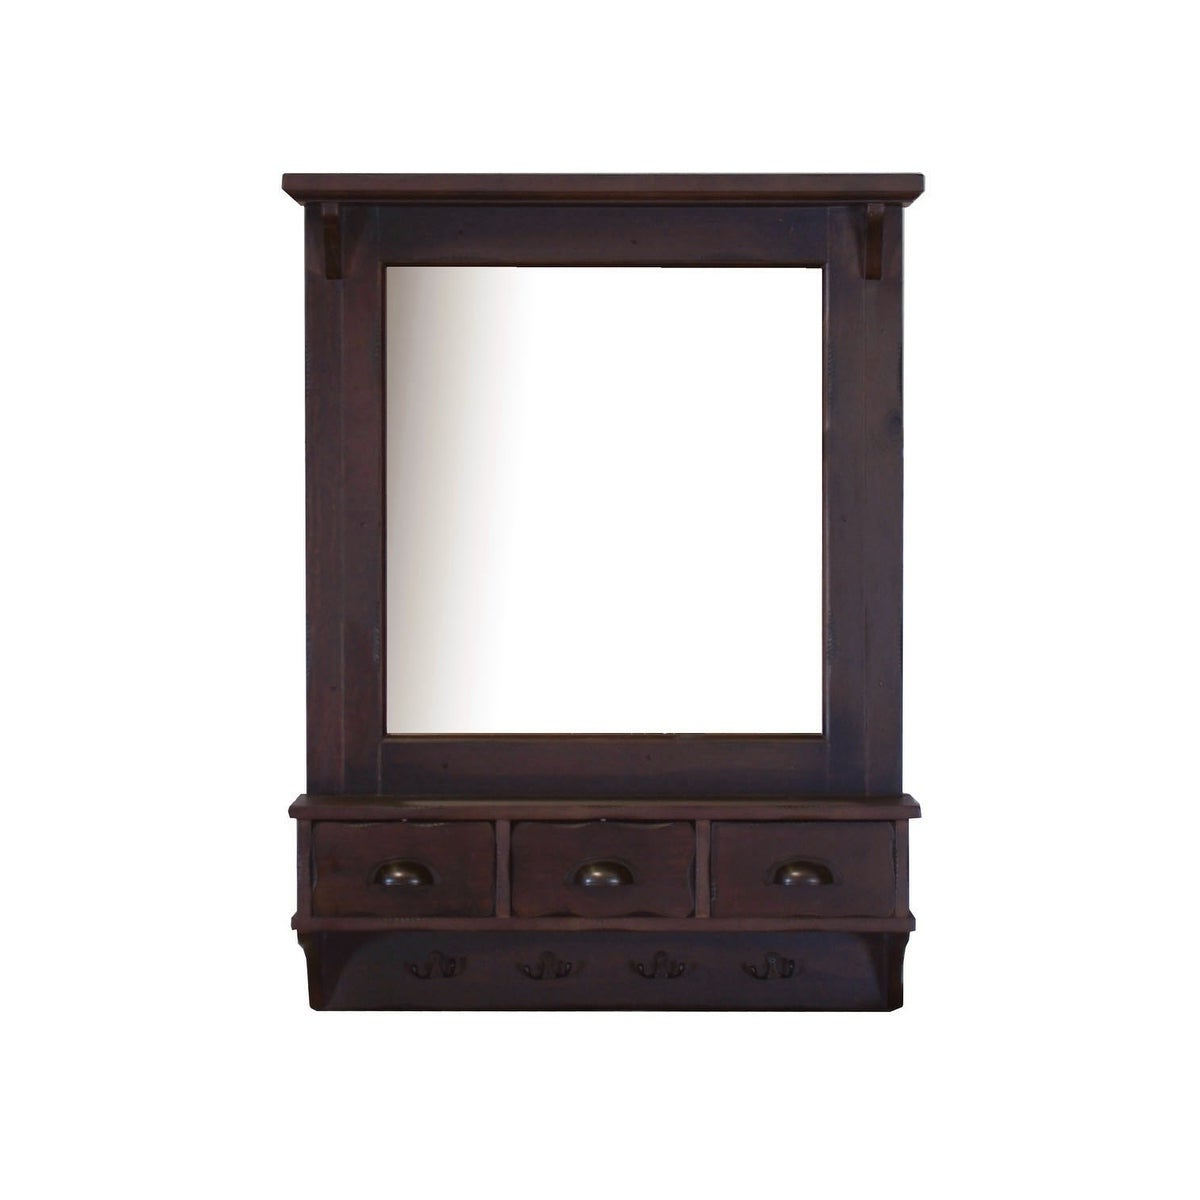 Favorite Wall Mirrors With Drawers Pertaining To Bombay Brown Wall Mirror With Drawers And Hooks – A/n (Gallery 2 of 20)